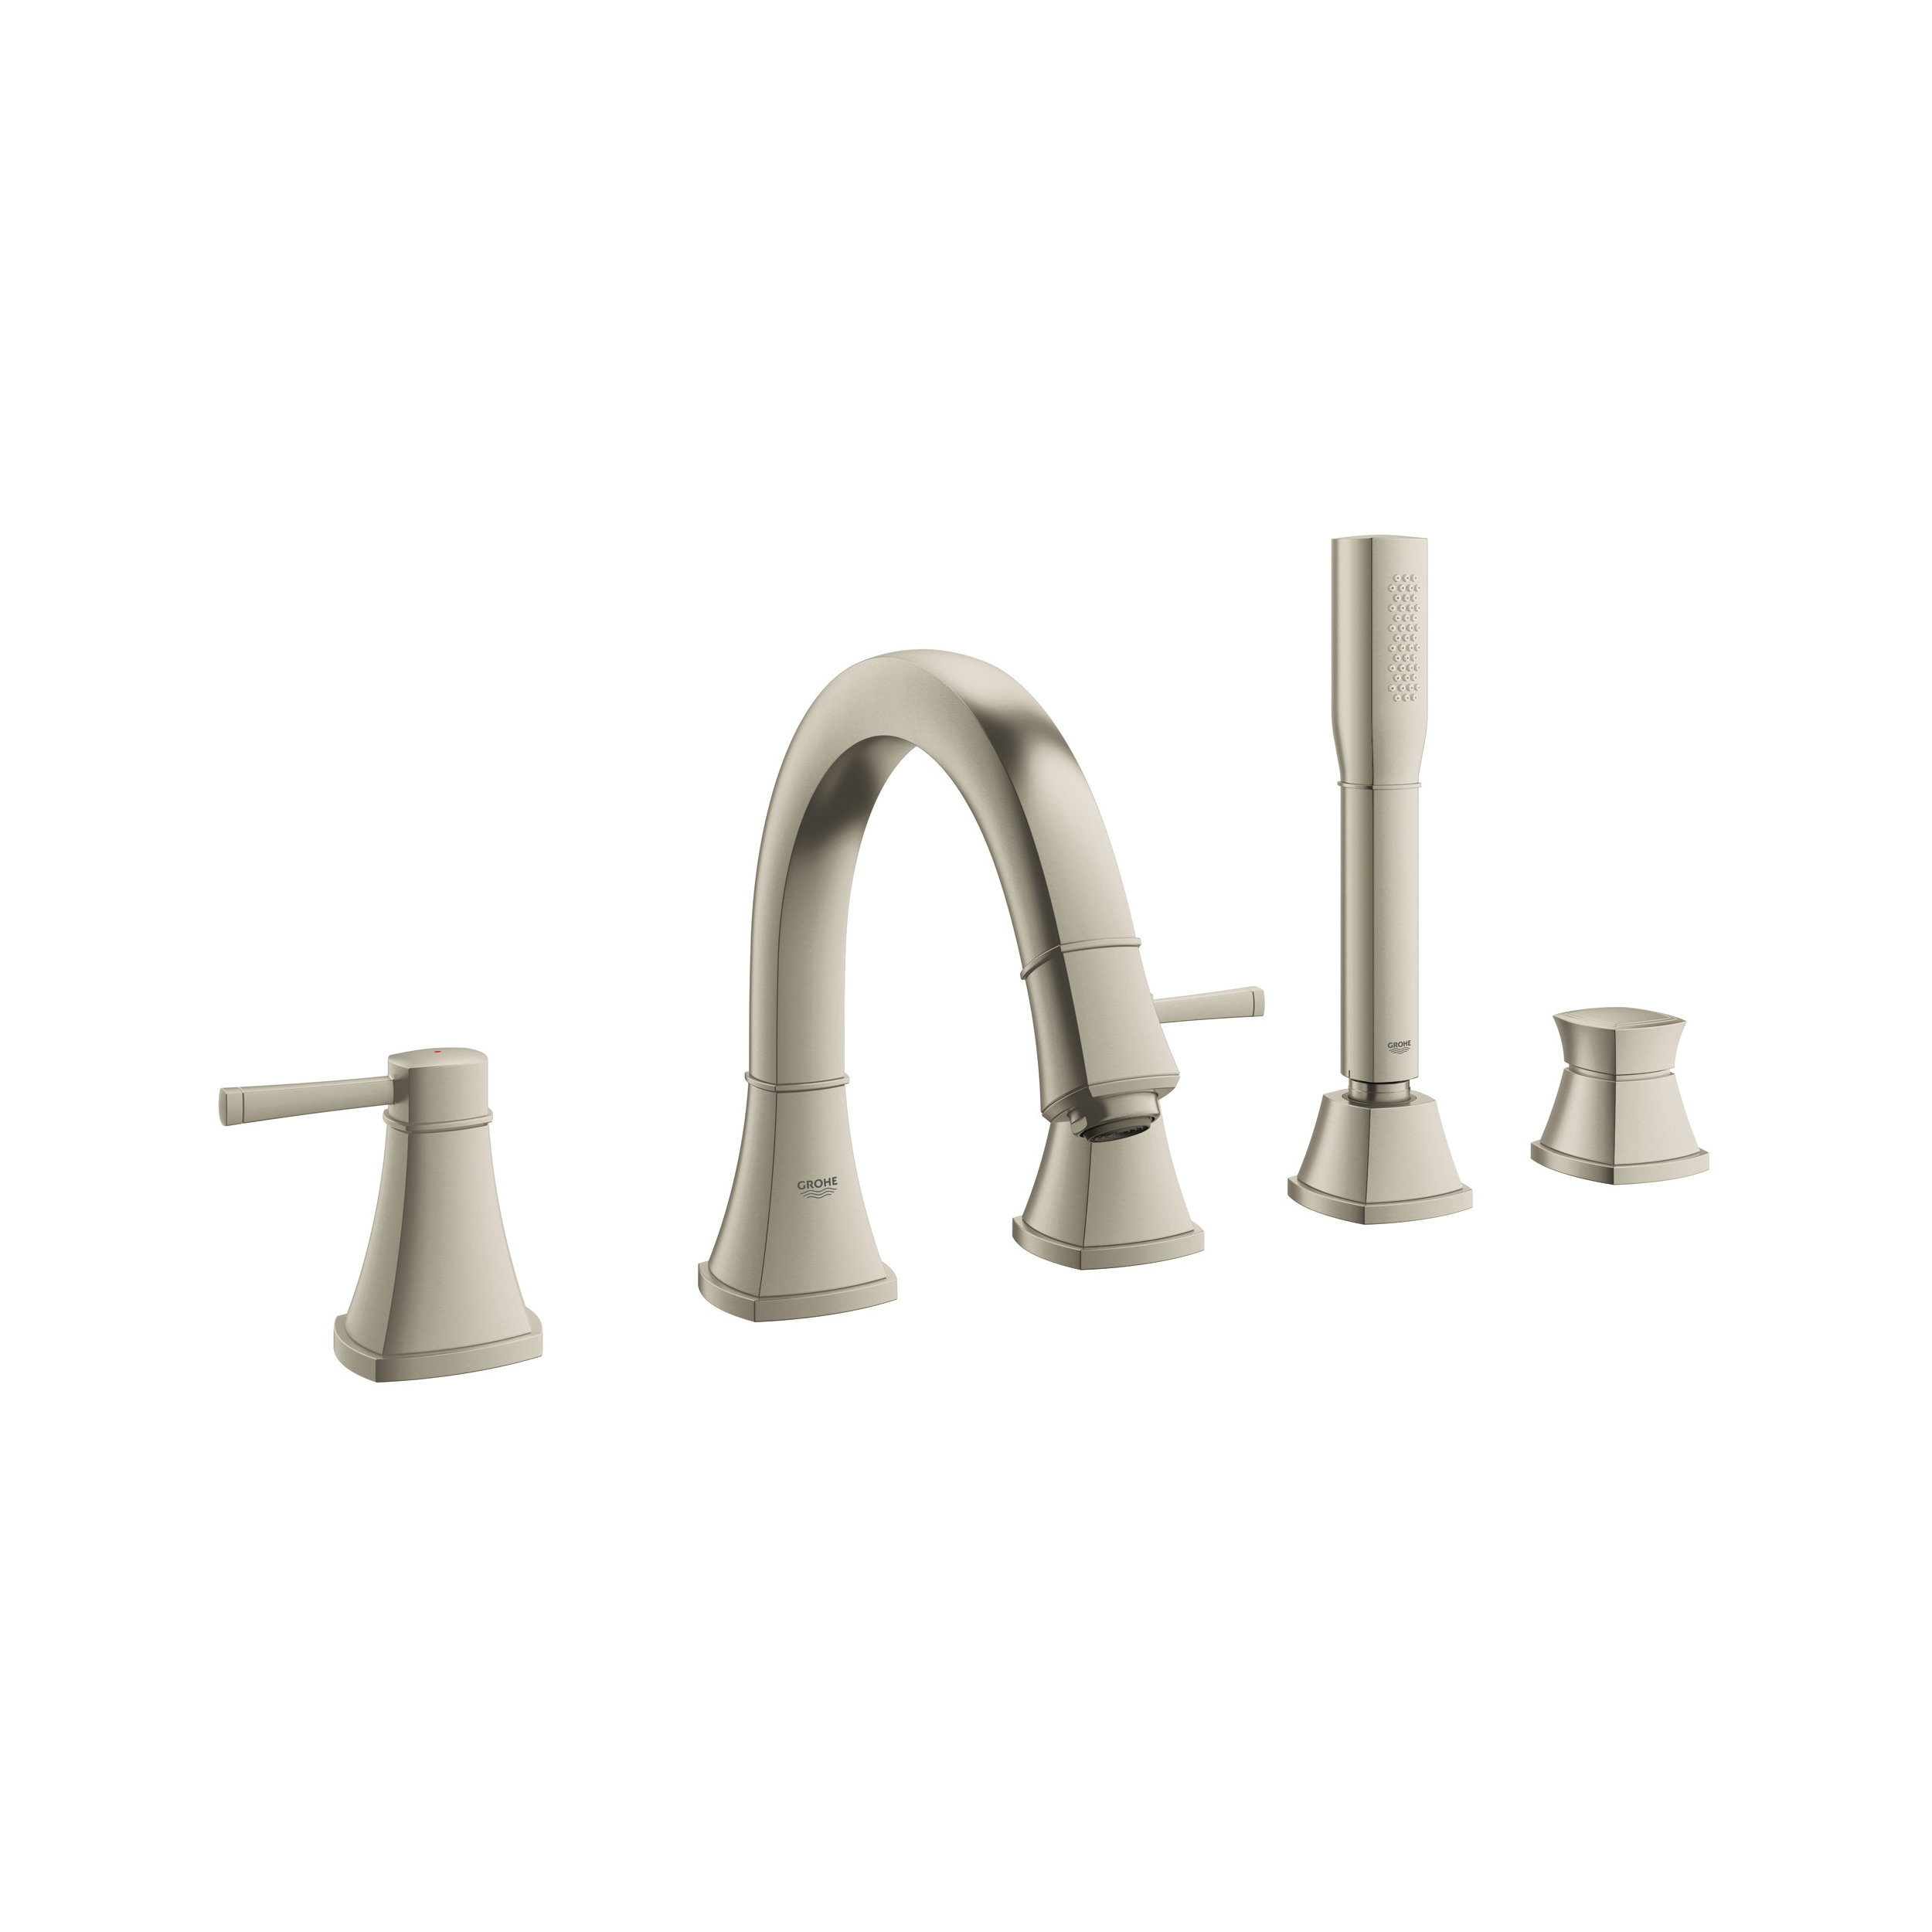 GROHE 19919EN0 Grohflex Grandera™ Roman Tub Filler, 2 gpm, 8 in Center, Brushed Nickel, 2 Handles, Hand Shower Yes/No: Yes, Import